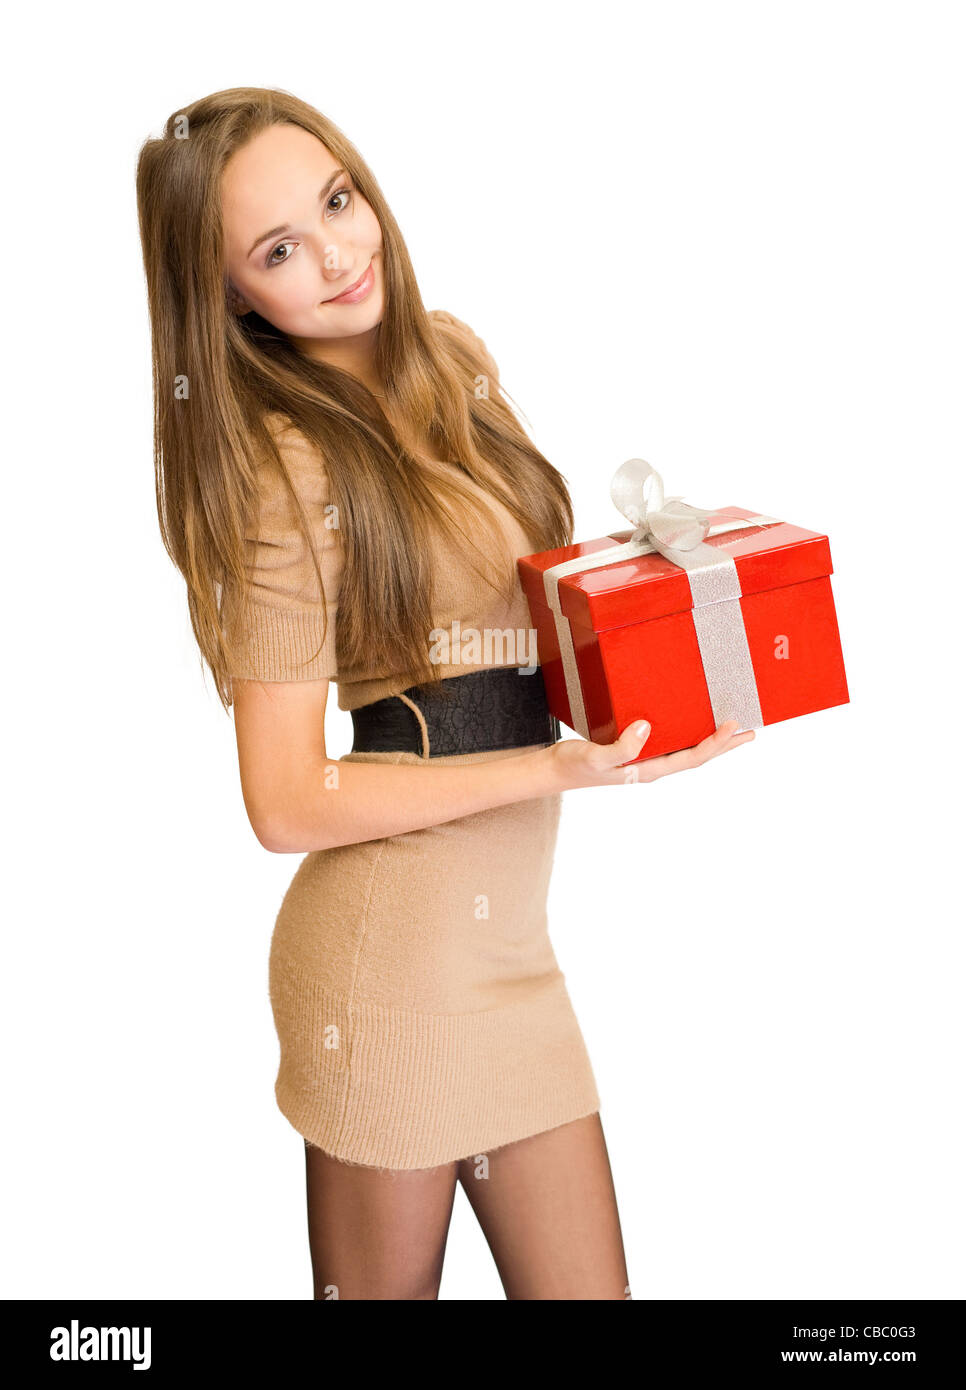 Half length portrait of a beautiful young brunette posing with bright red gift box, isolated on white background - Stock Image